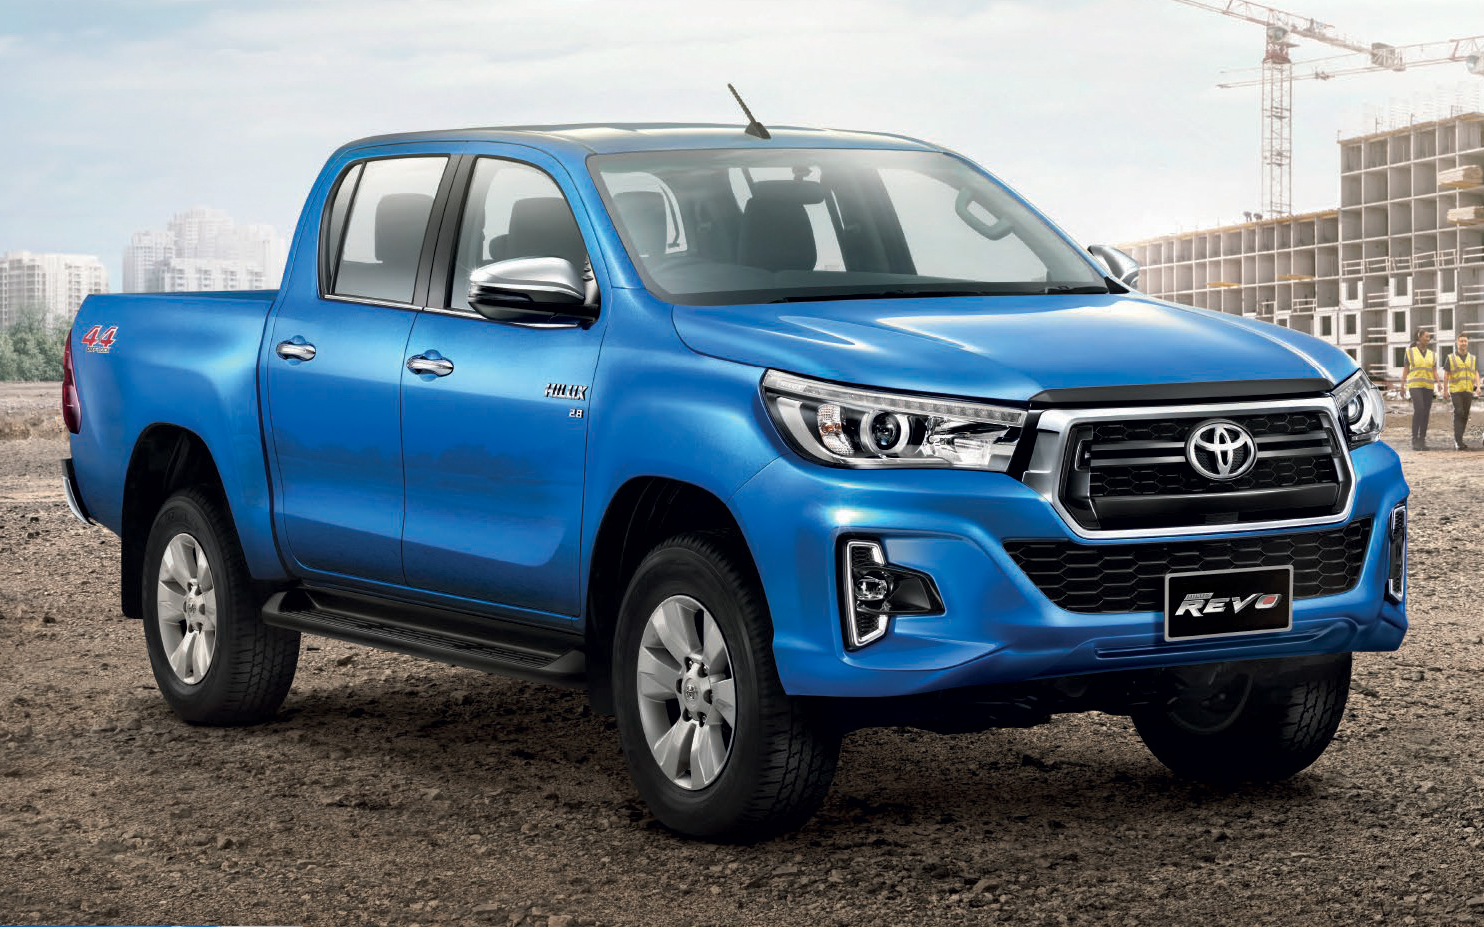 2018 Toyota Hilux facelift gets new Tacoma-style face Image 737634